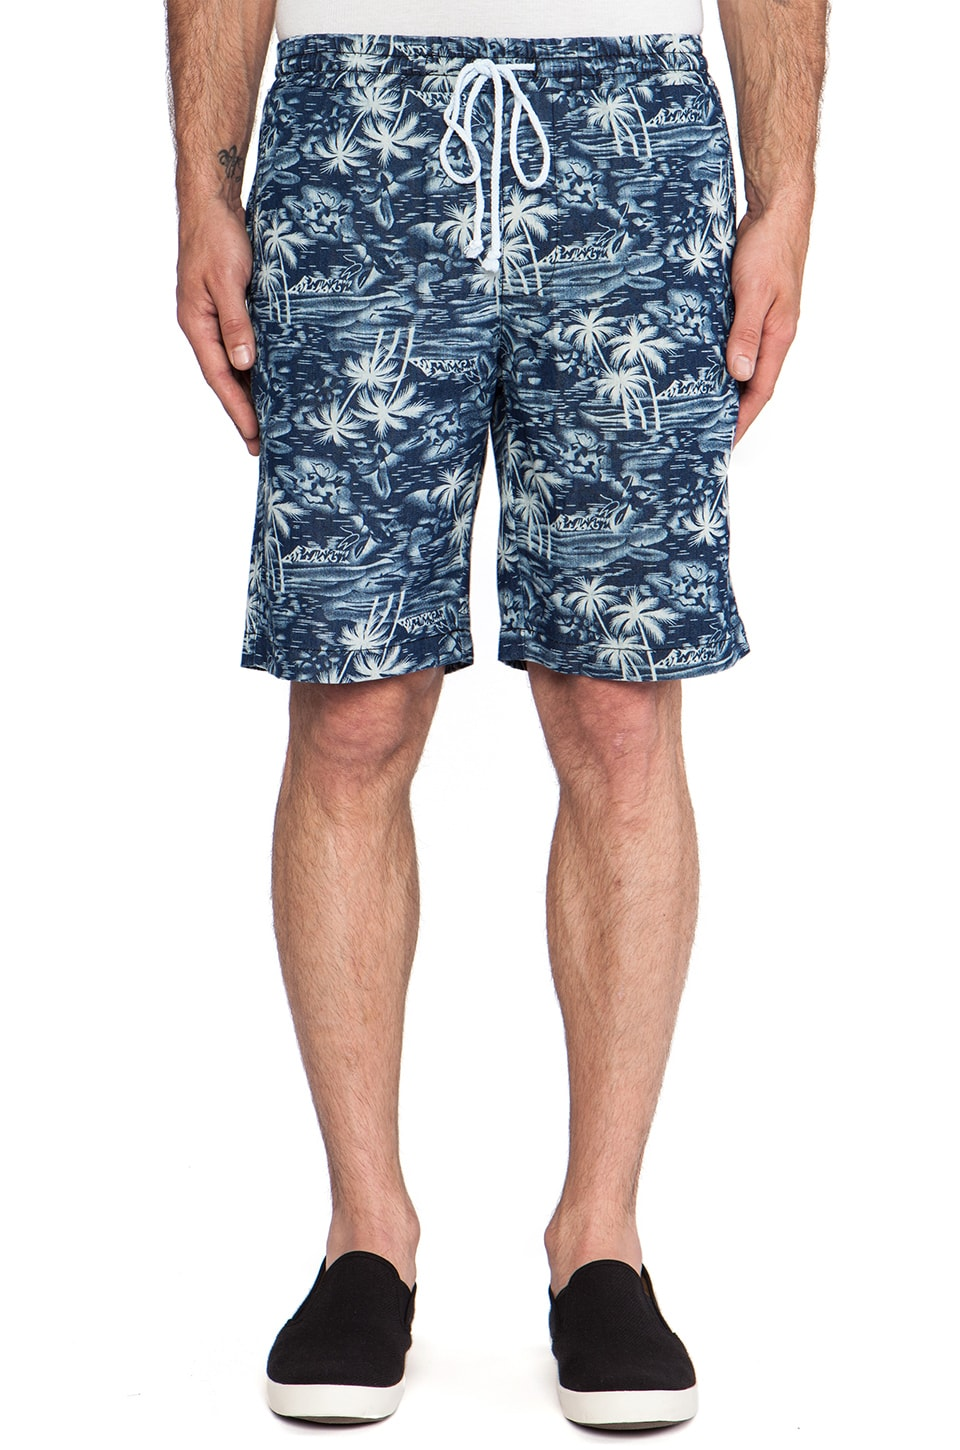 TOVAR Harrison Shorts Print in Vacation